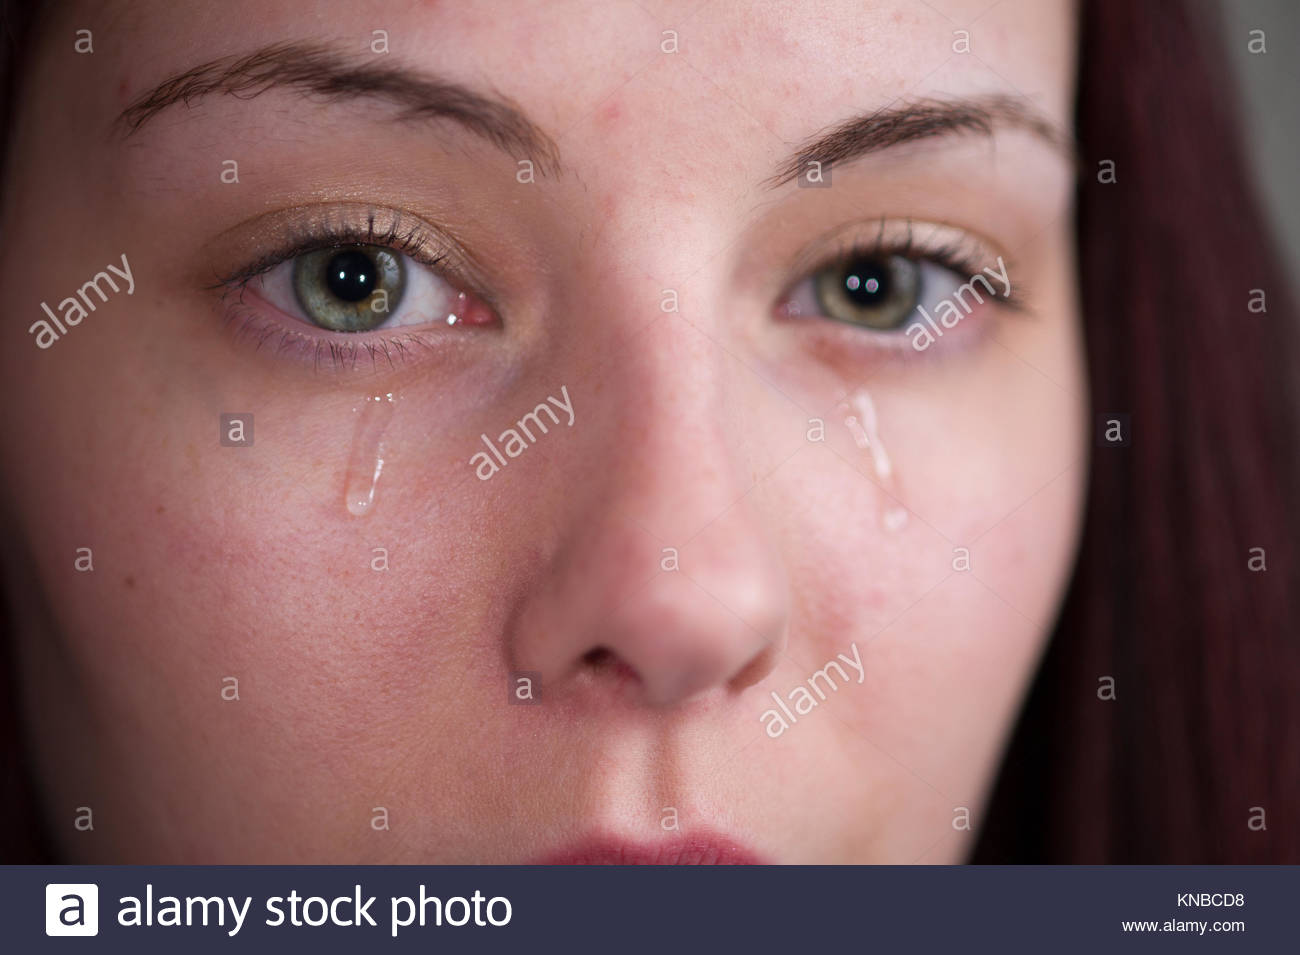 close up of a woman's face with tears running down her cheeks - Stock Image